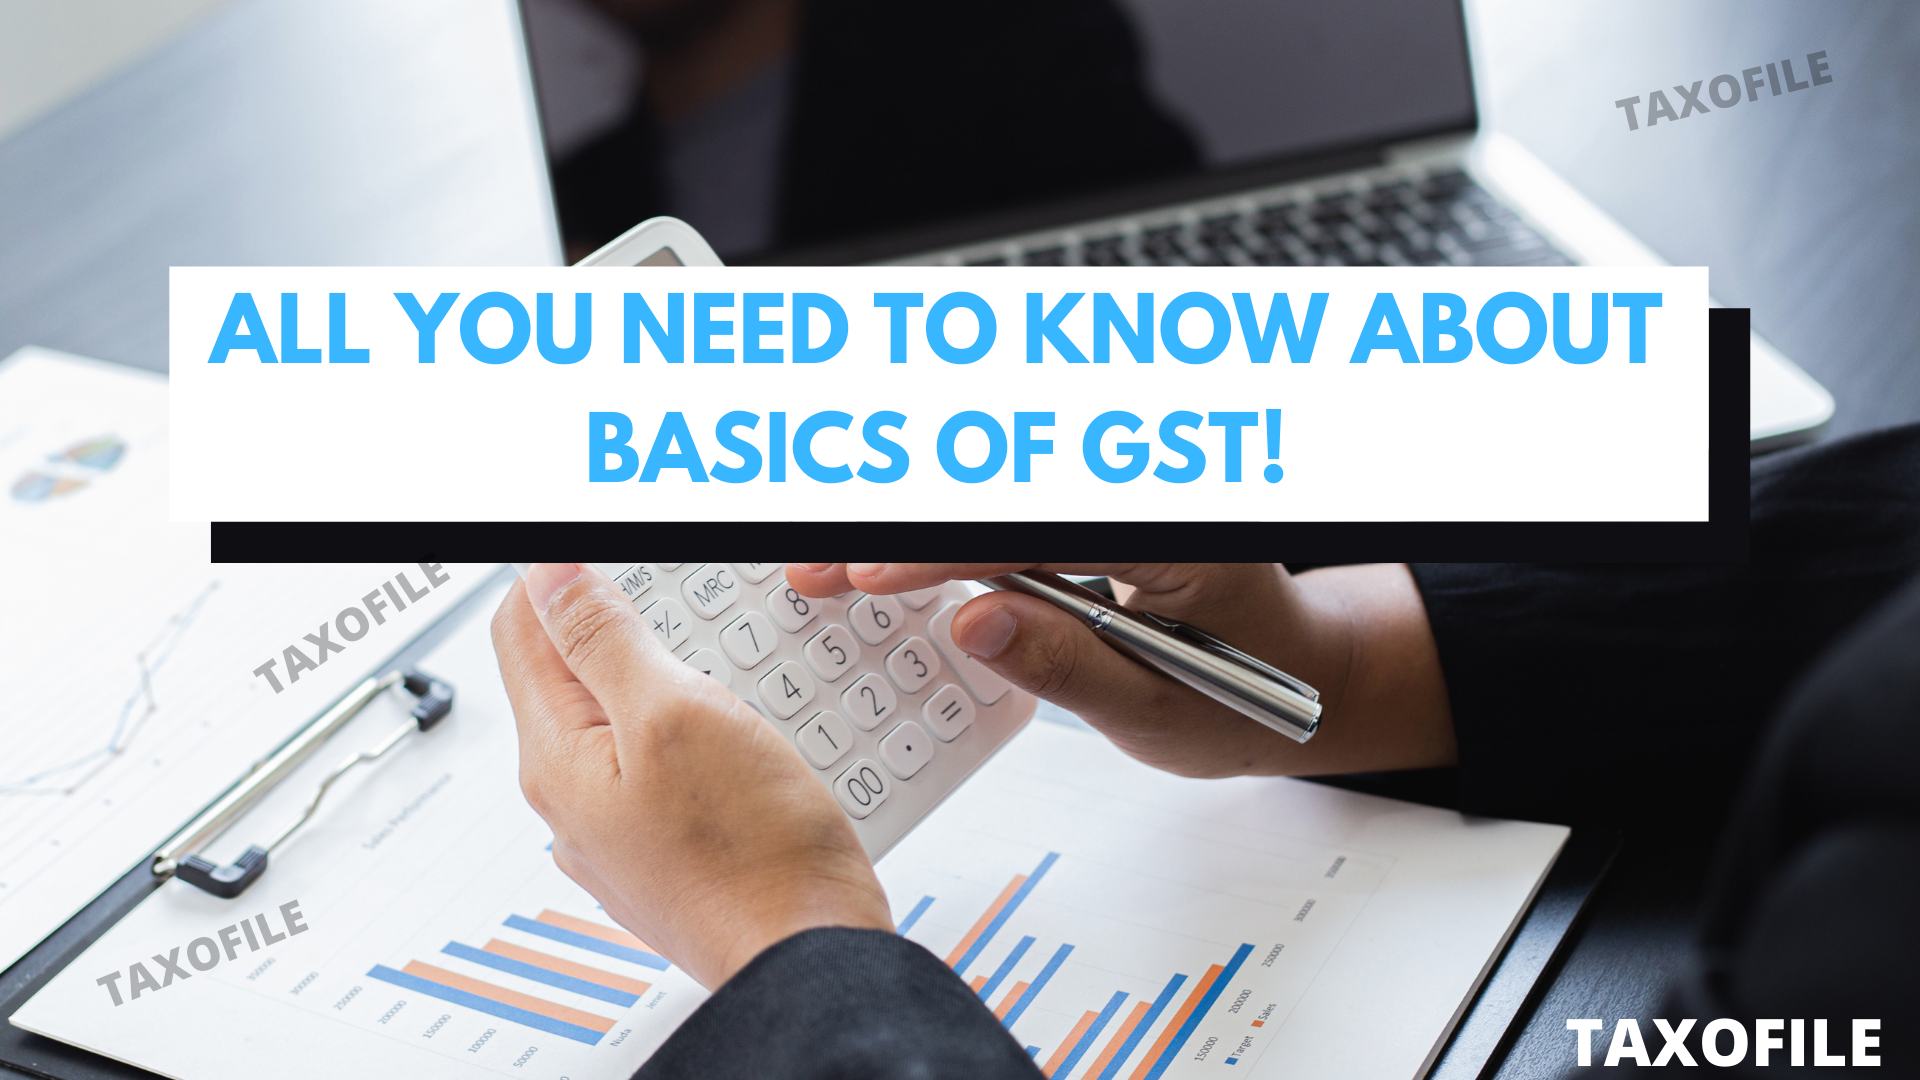 All you need to know about Basics of GST!